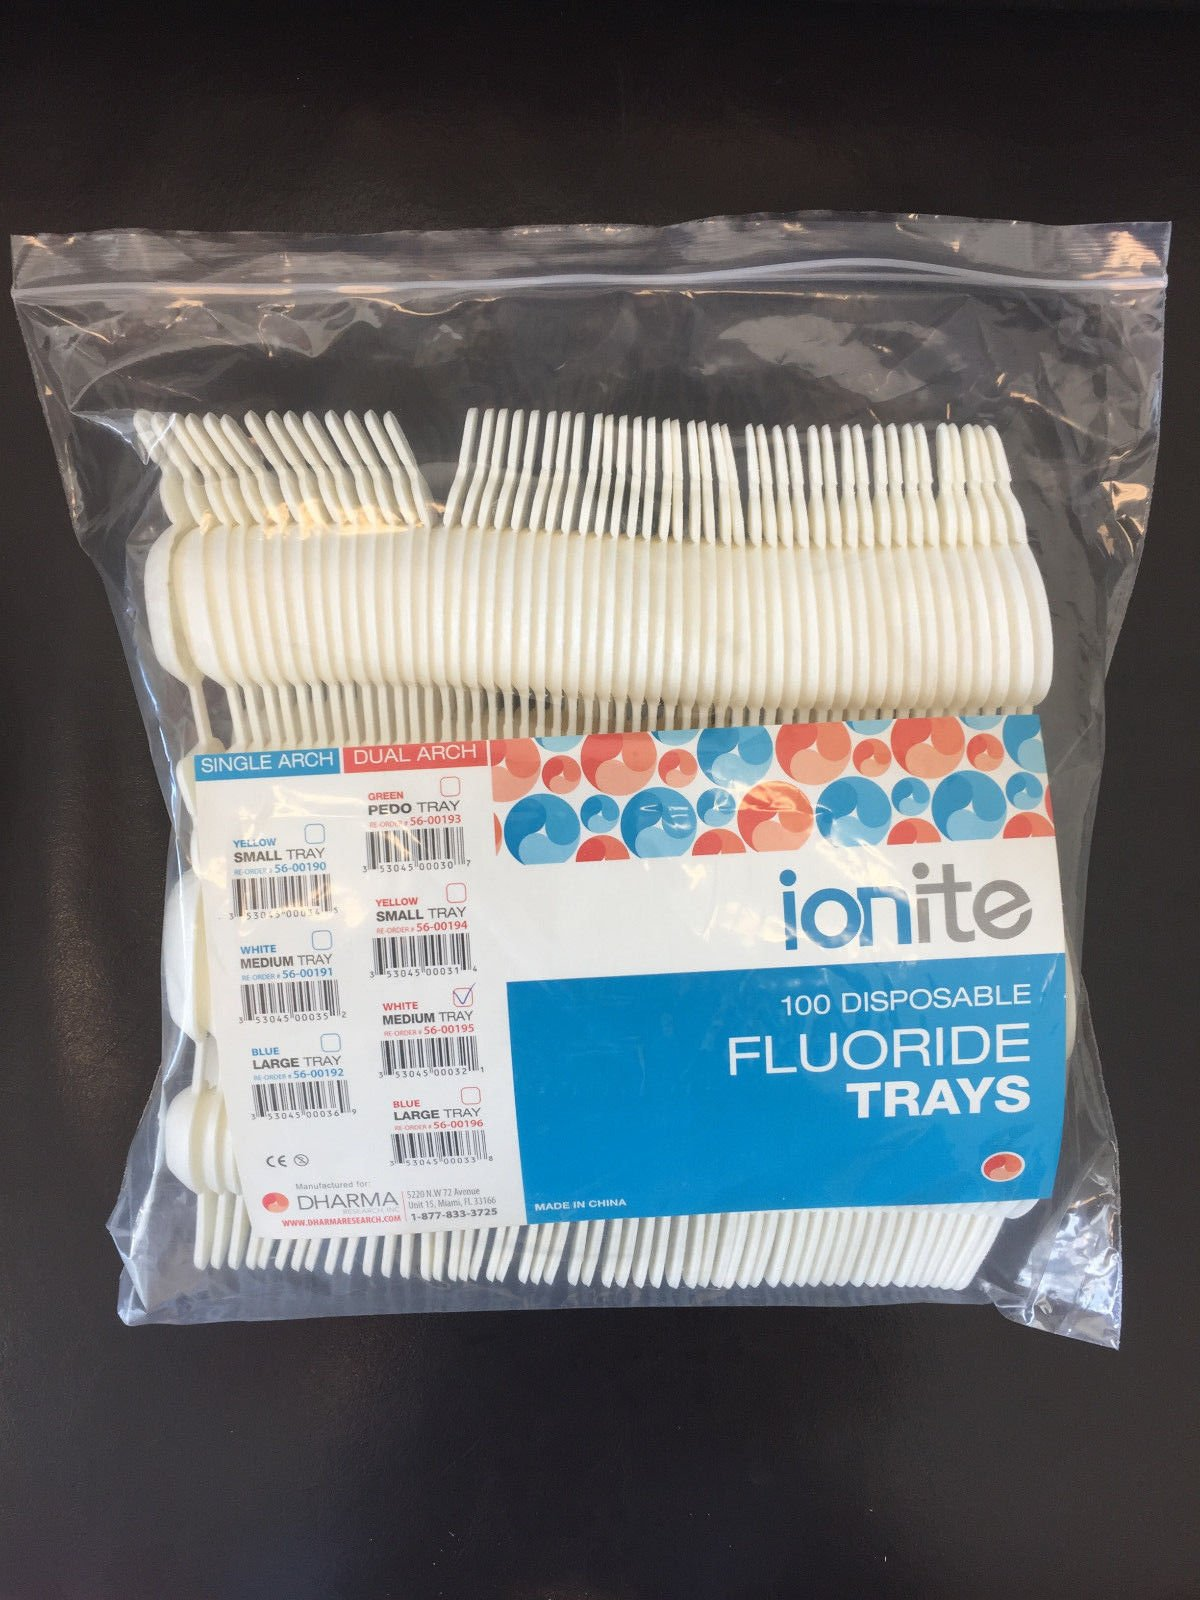 Dental Disposable White Medium /100 Pcs Pack Fluoride Trays Dual Arch Ionite